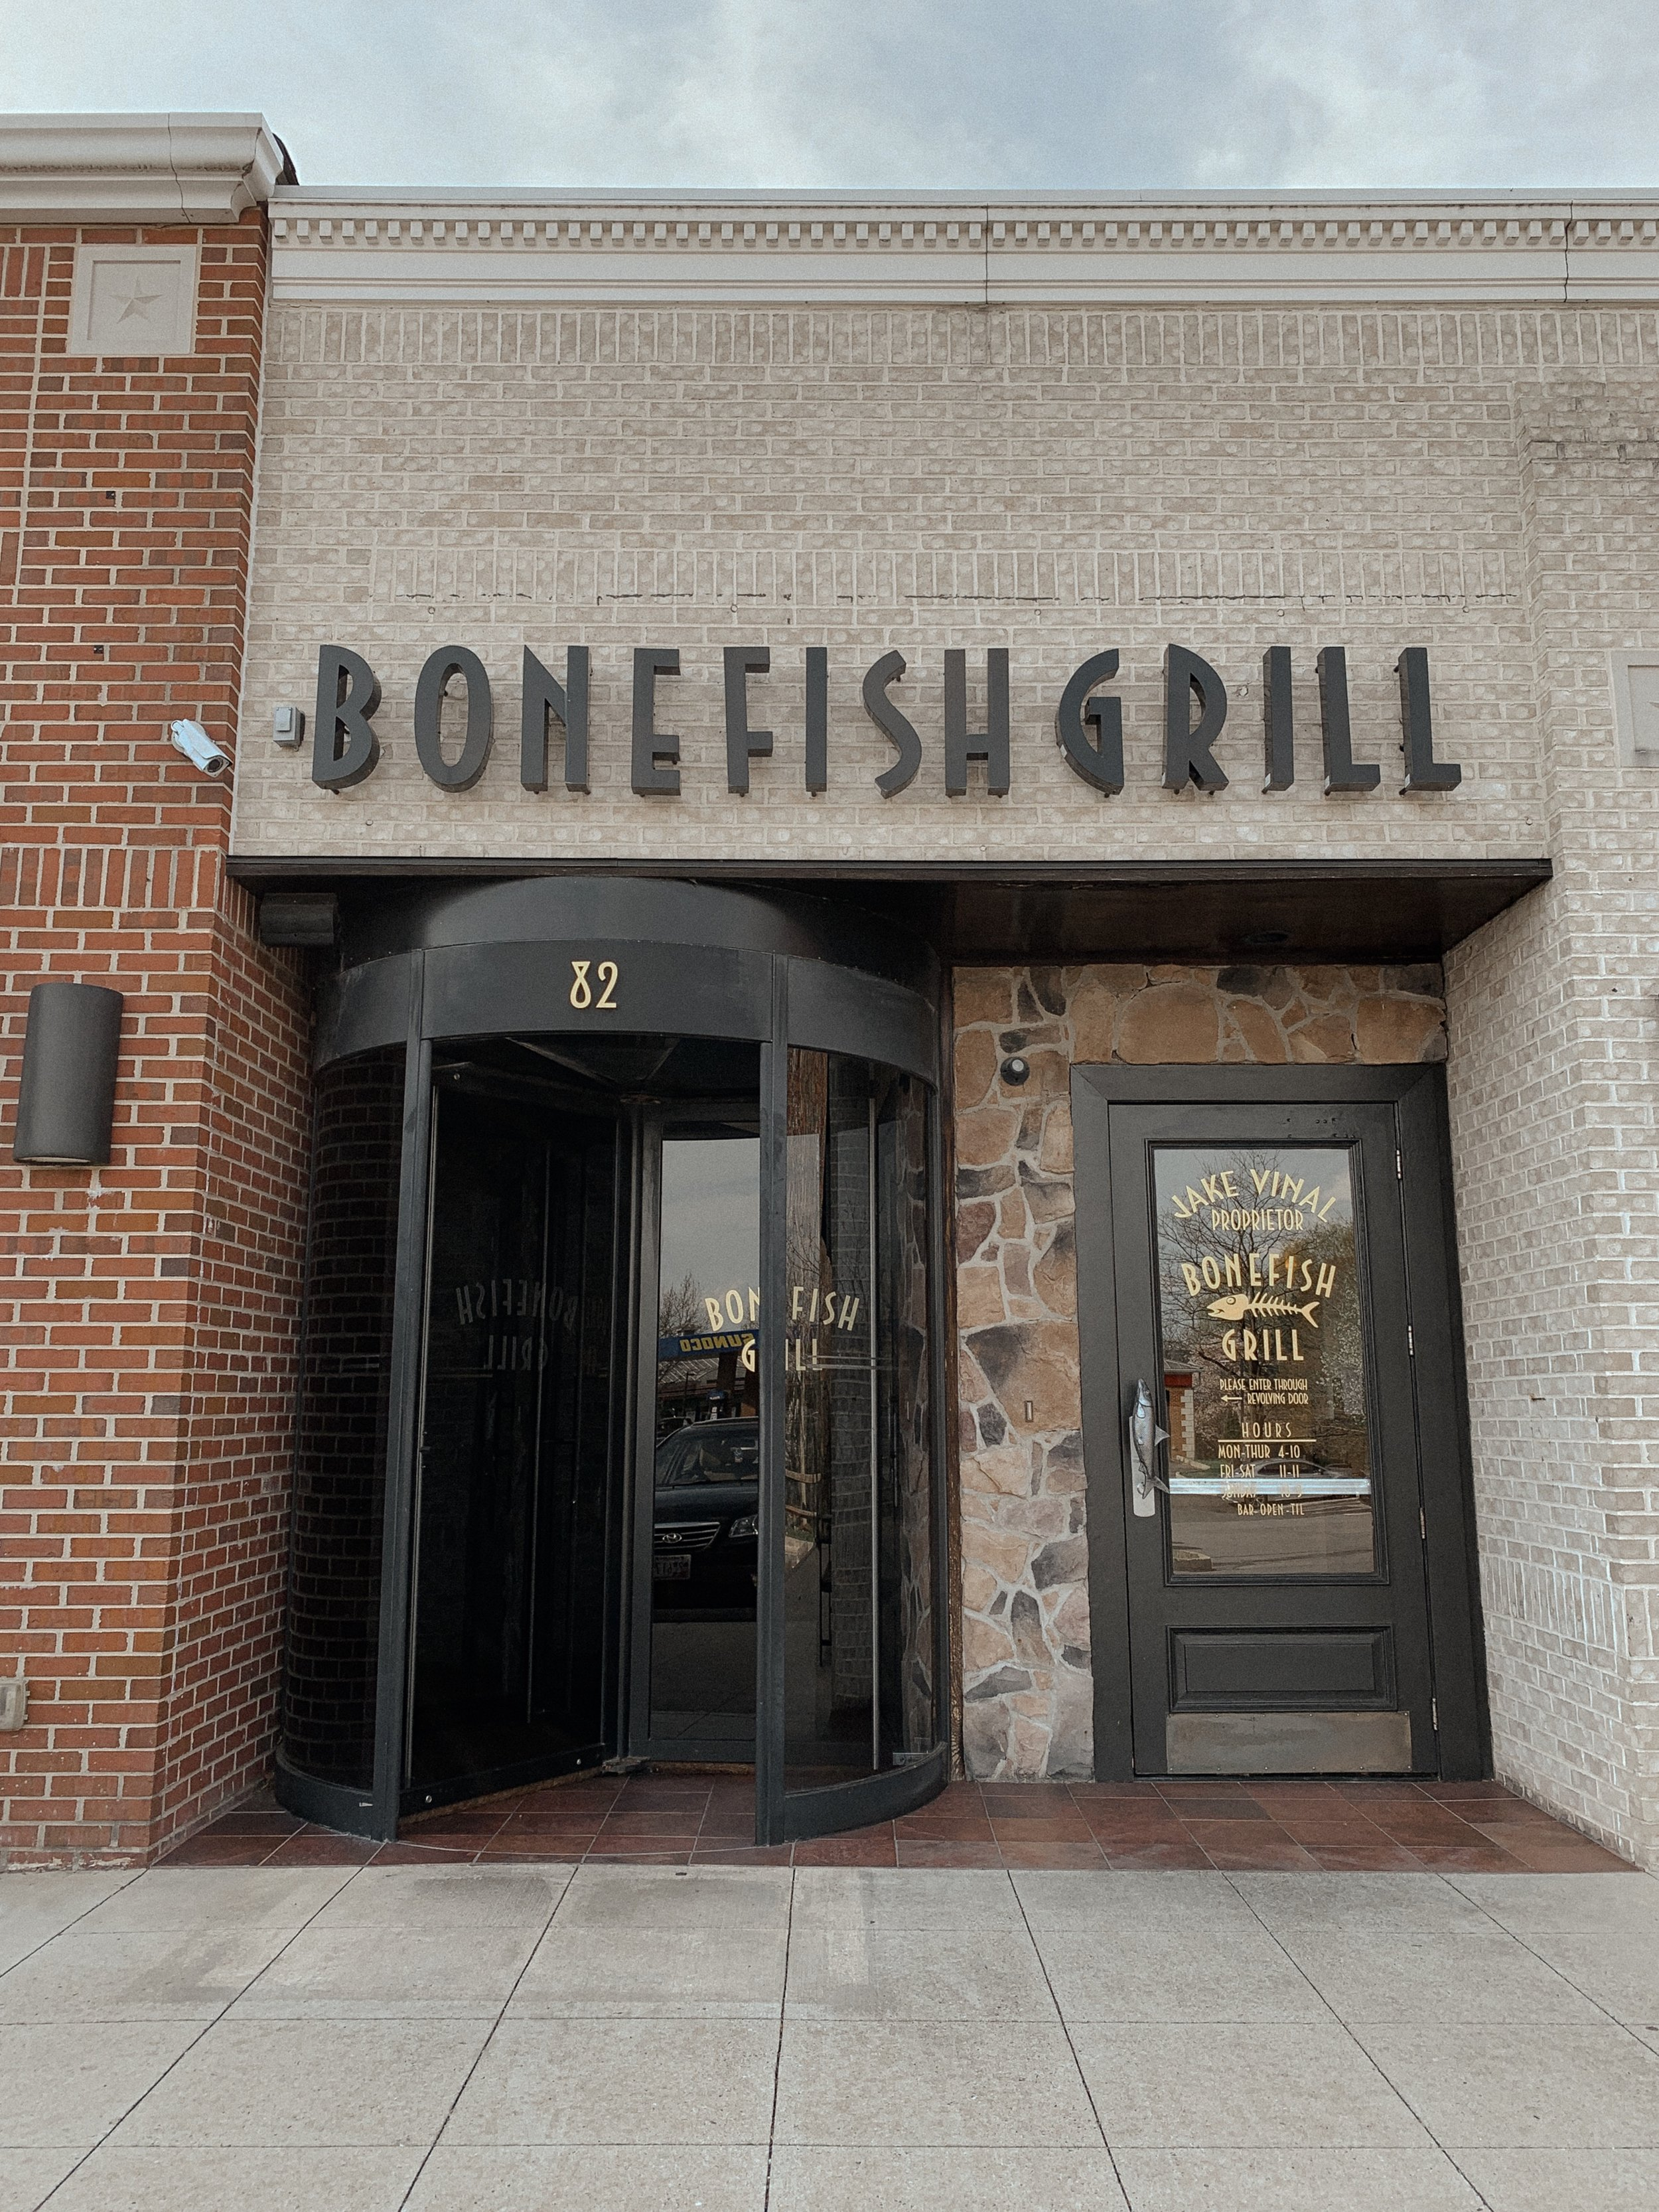 Enjoy a 3-Course Meal for only $49 - Bonefish Grill Food Review and Giveaway